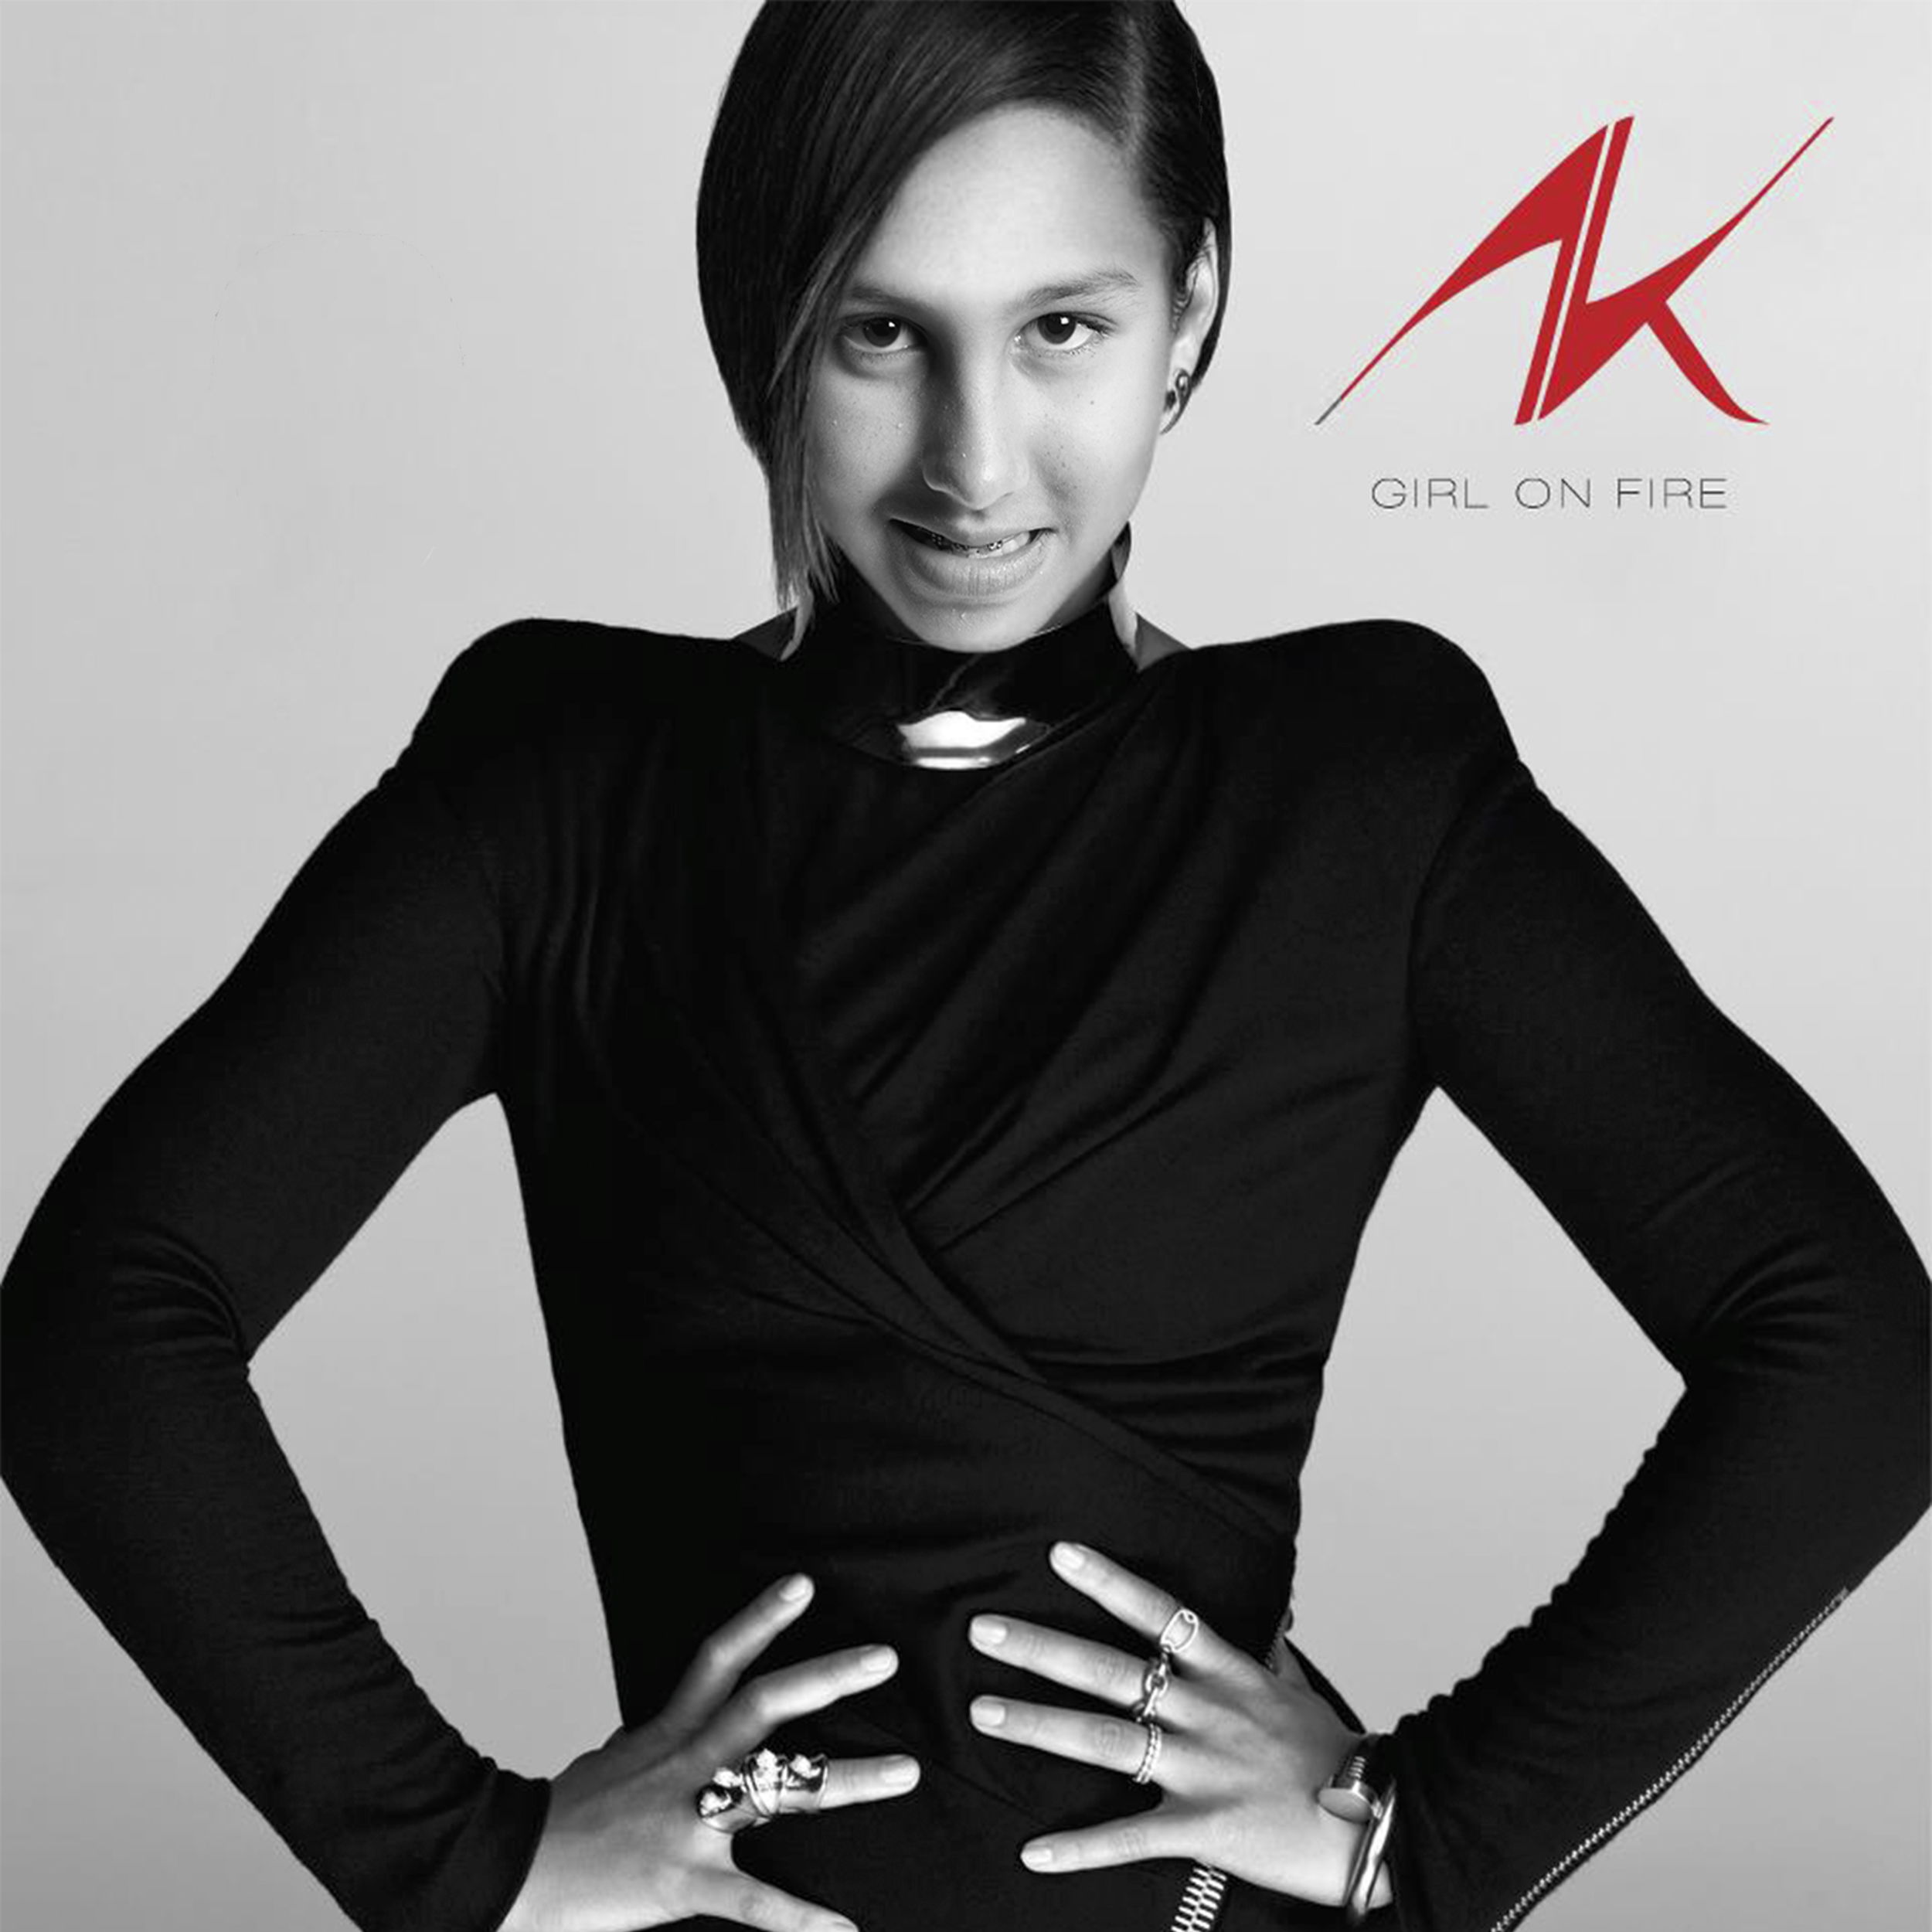 6.3 anisha  photoshop alicia keys girl on fire - edit.png